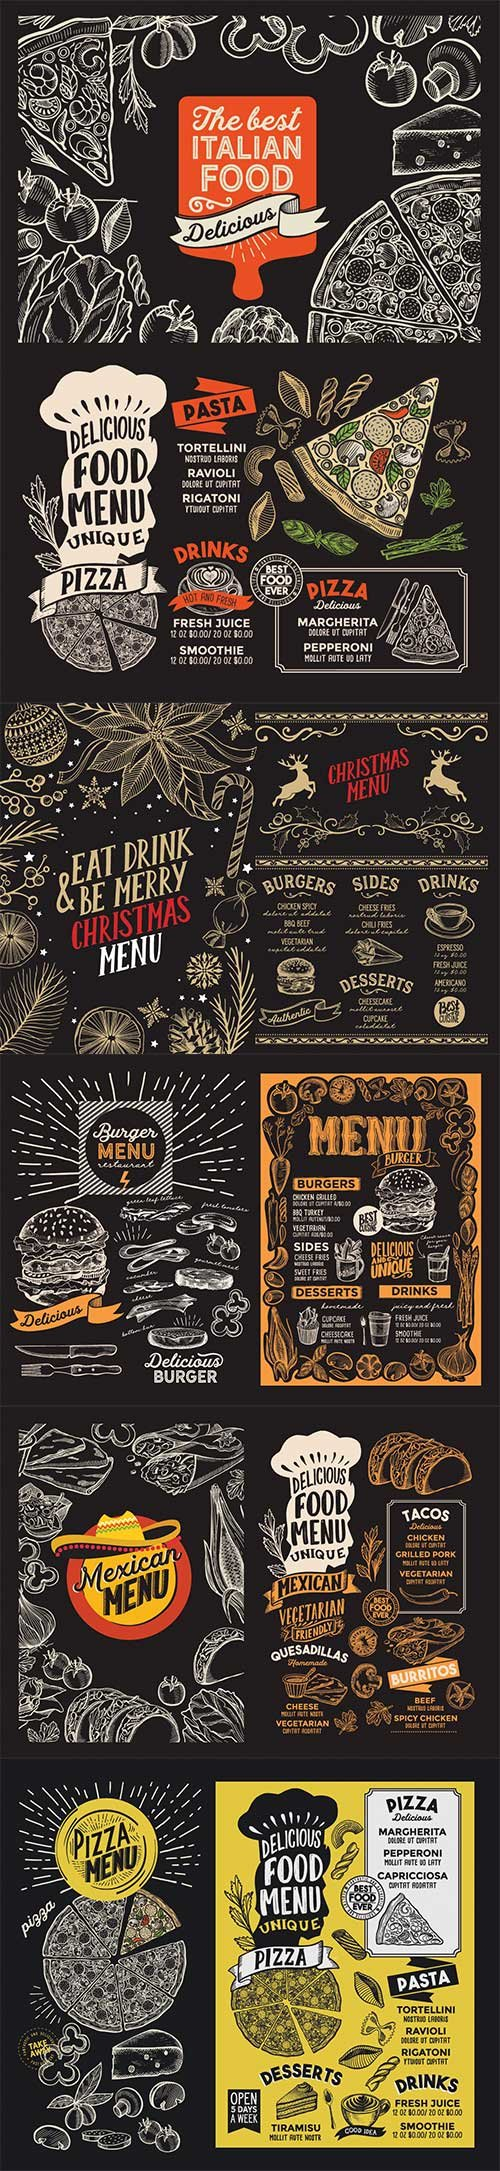 Menu food template for restaurant with doodle hand-drawn